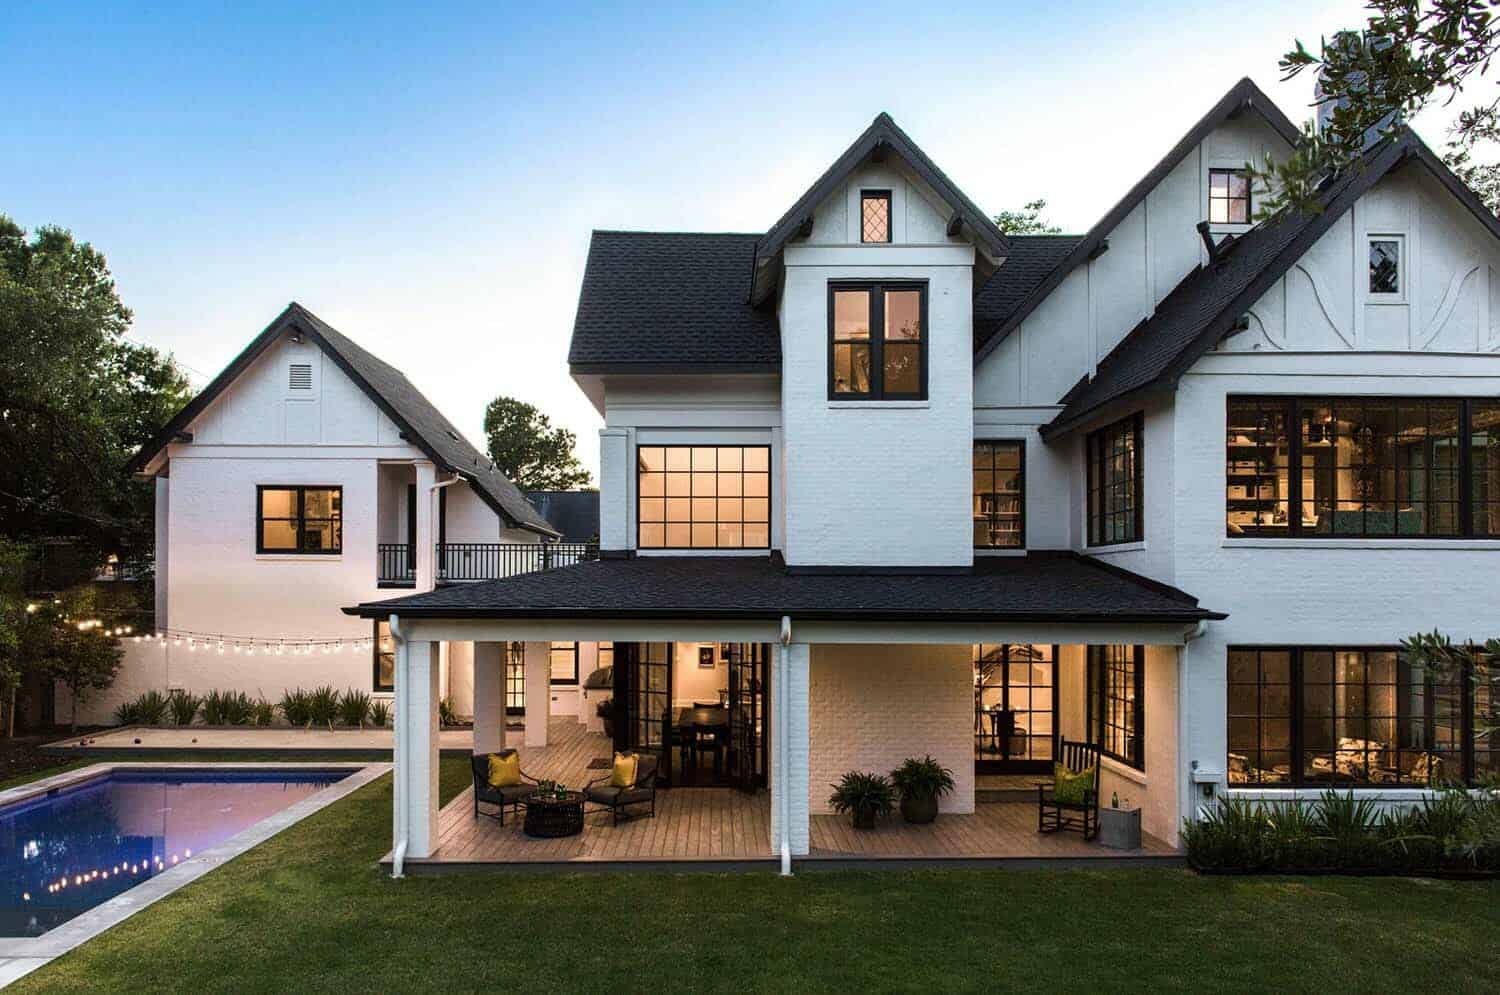 Historic Tudorstyle home in Houston gets a bold modern transformation